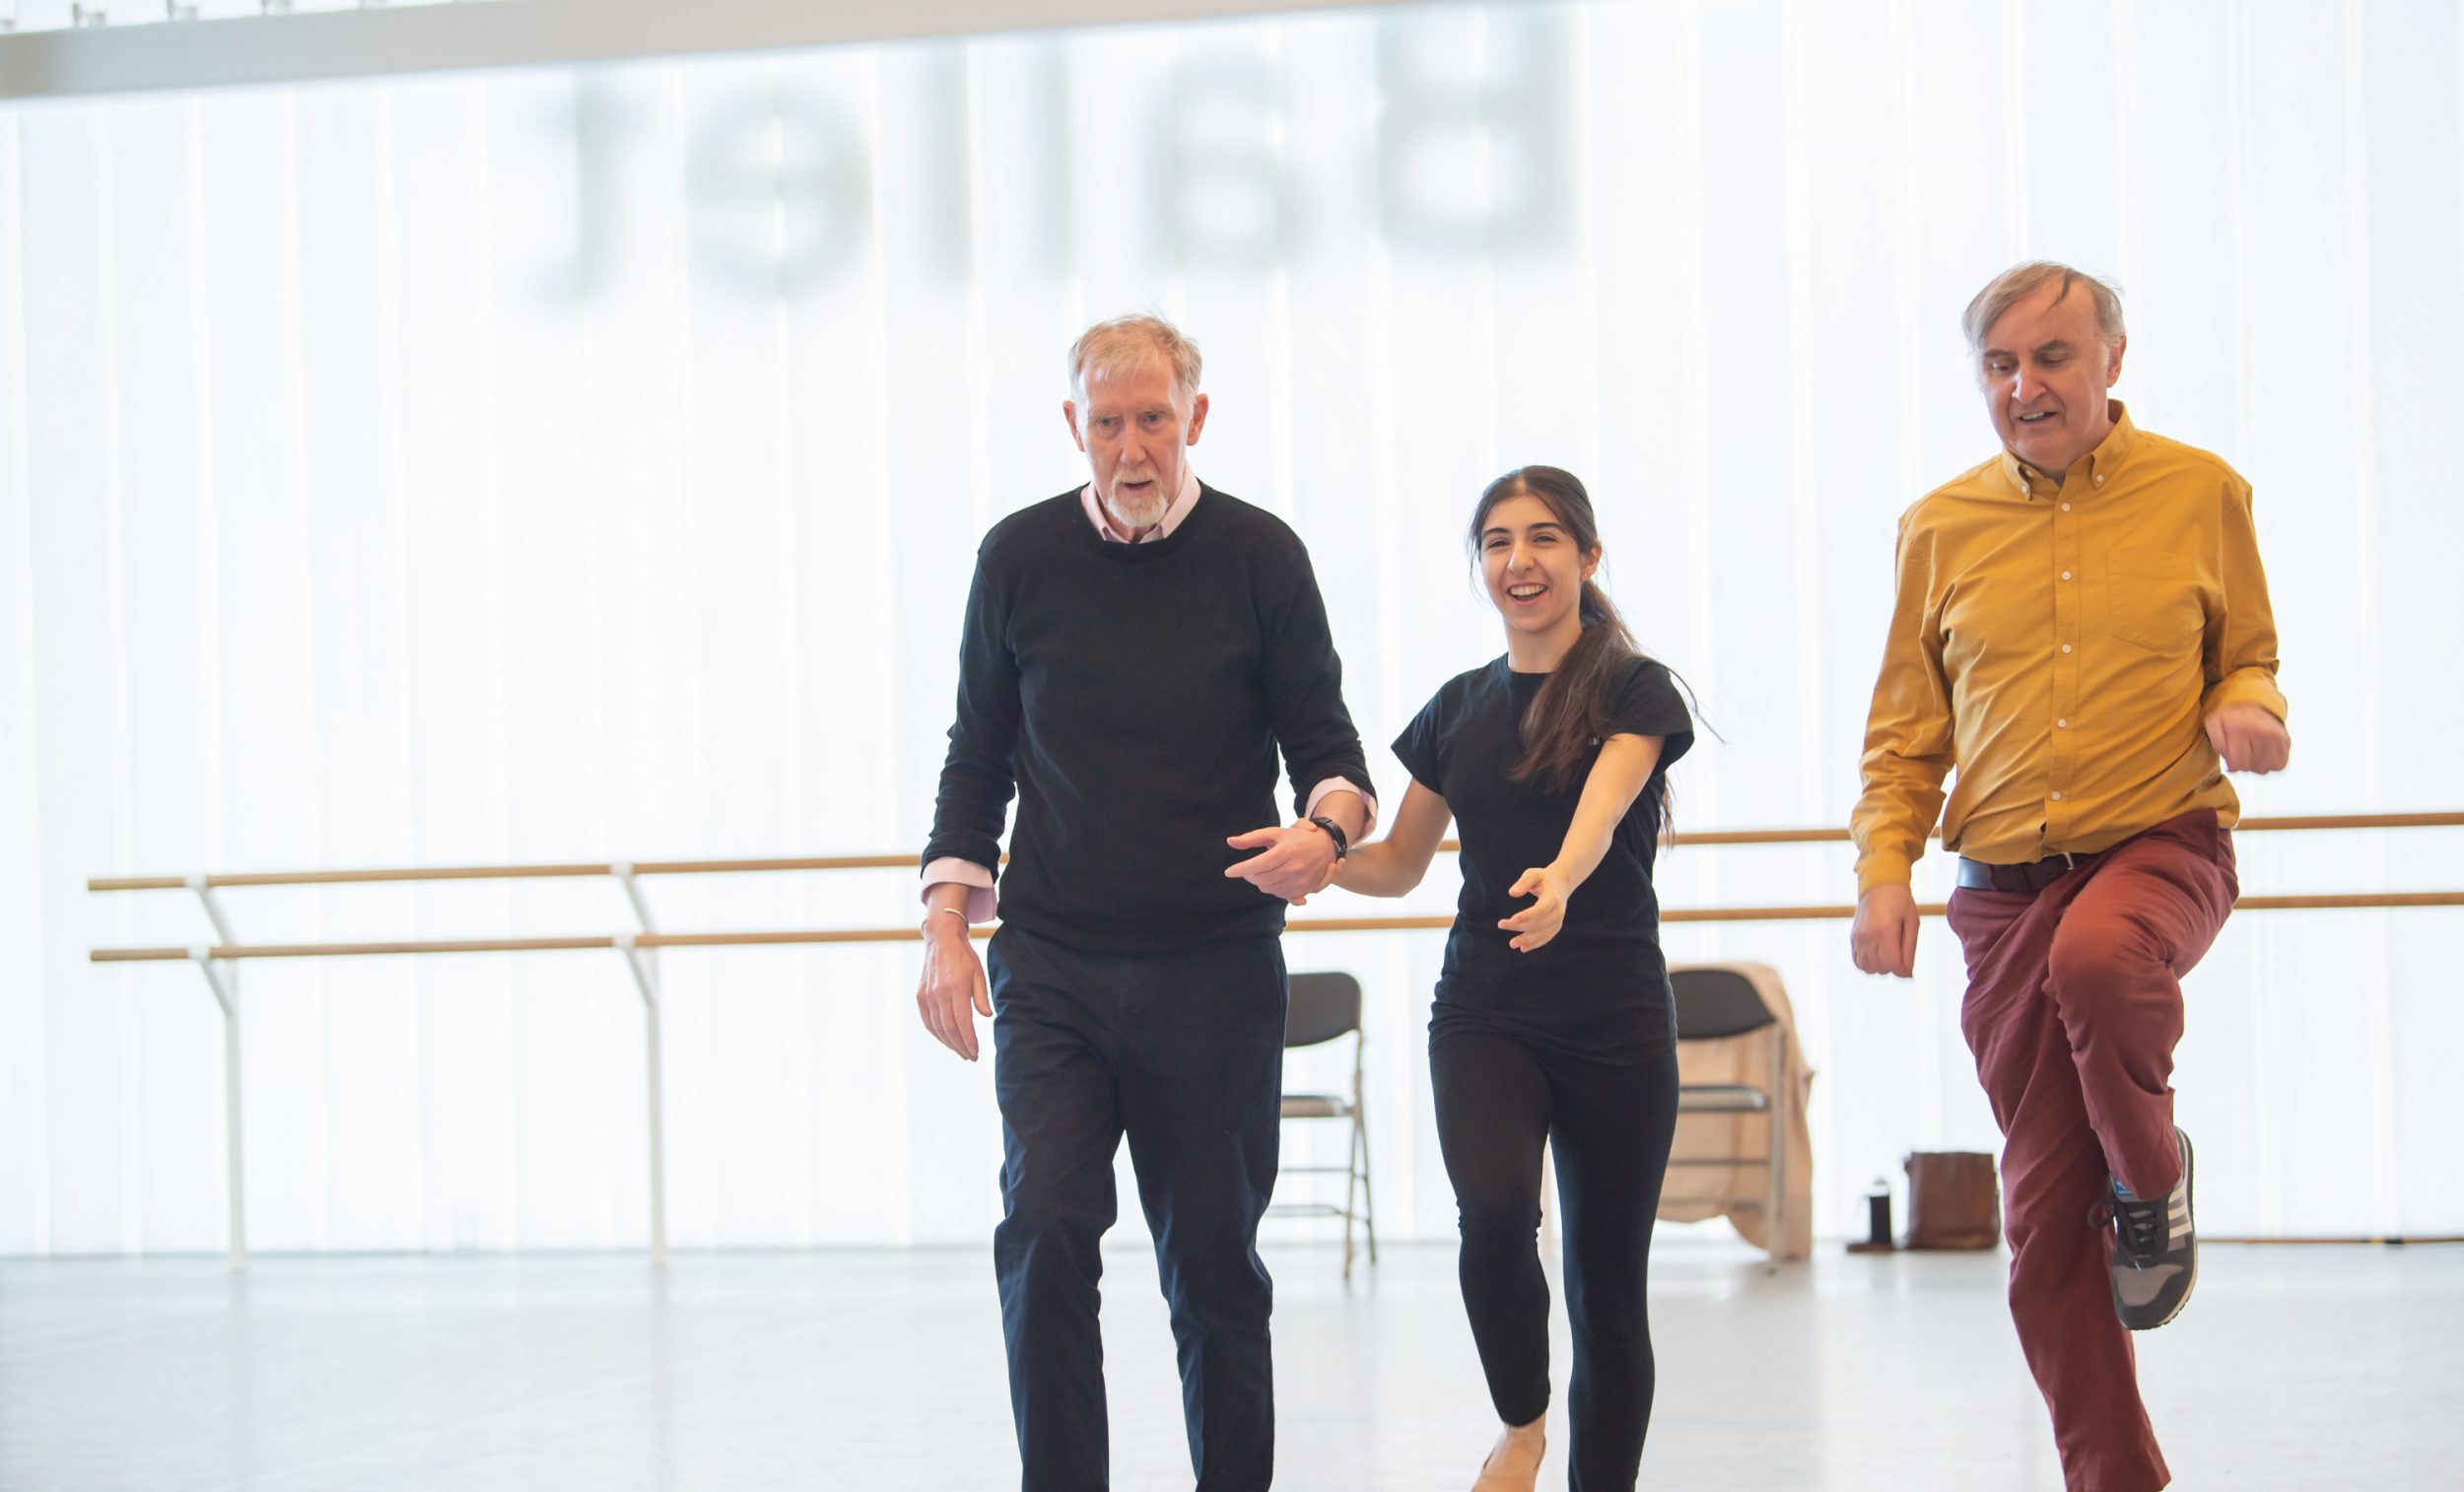 Dance for Parkinson's at English National Ballet's premises (c) Photography by ASH